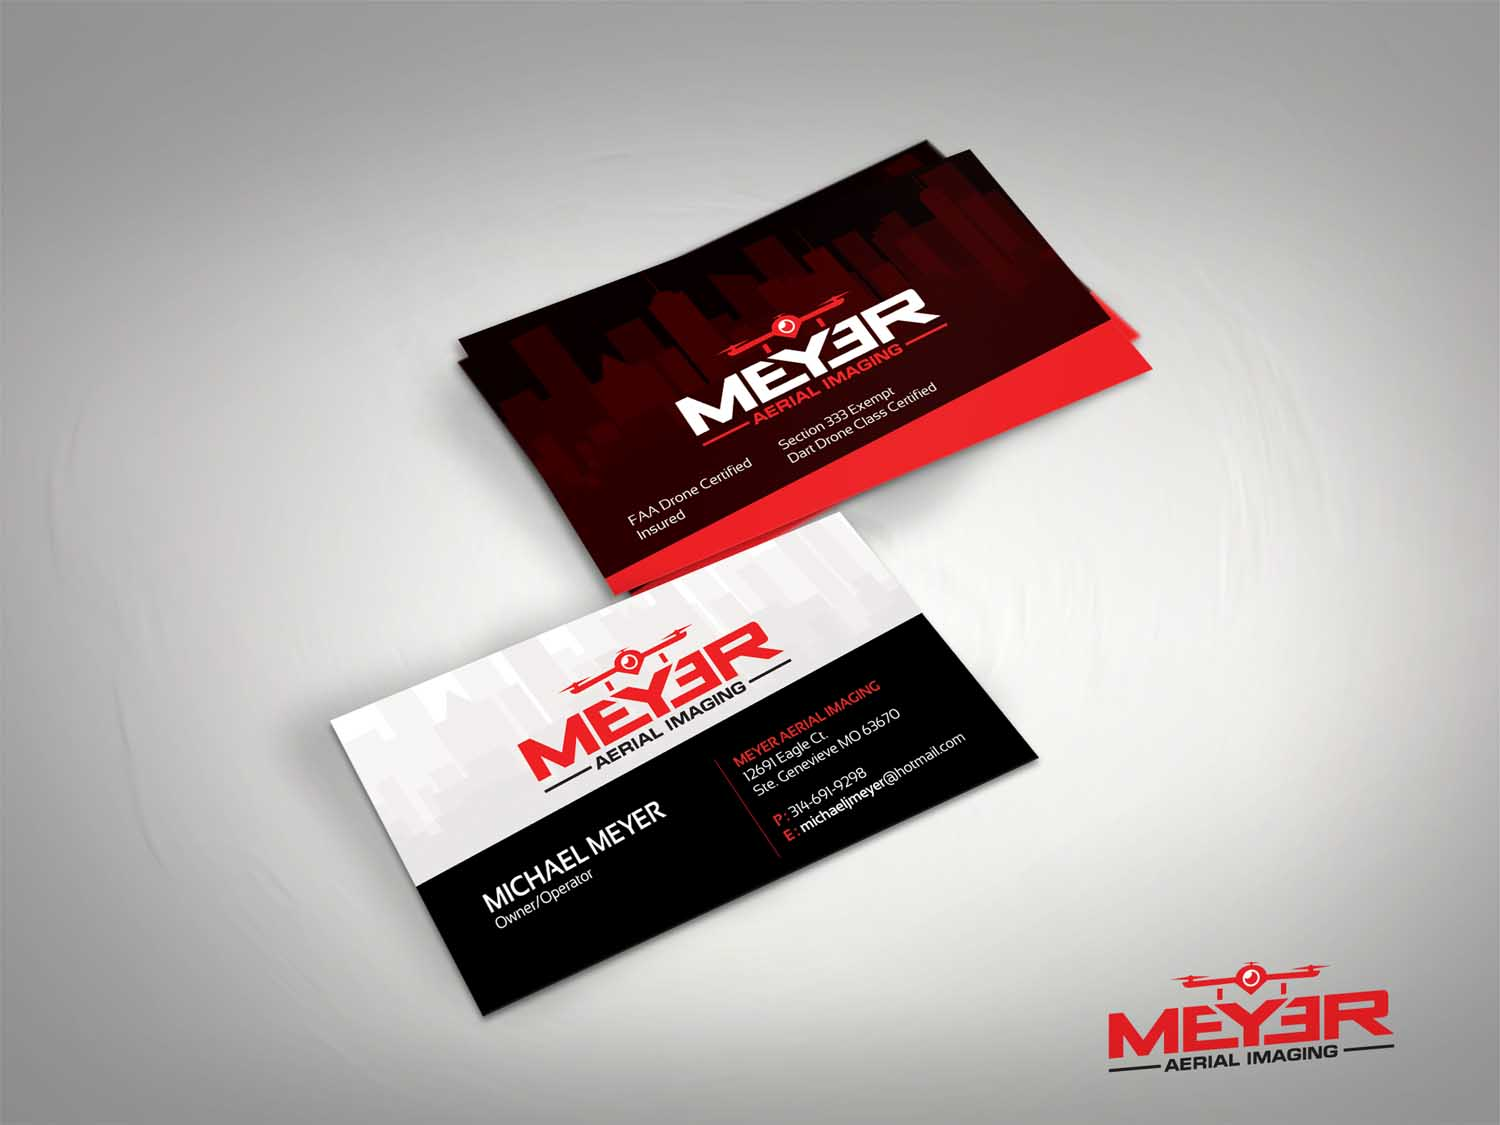 68 serious business card designs business business card design business card design by dirtyemm for meyer aerial imaging design 9650762 reheart Images